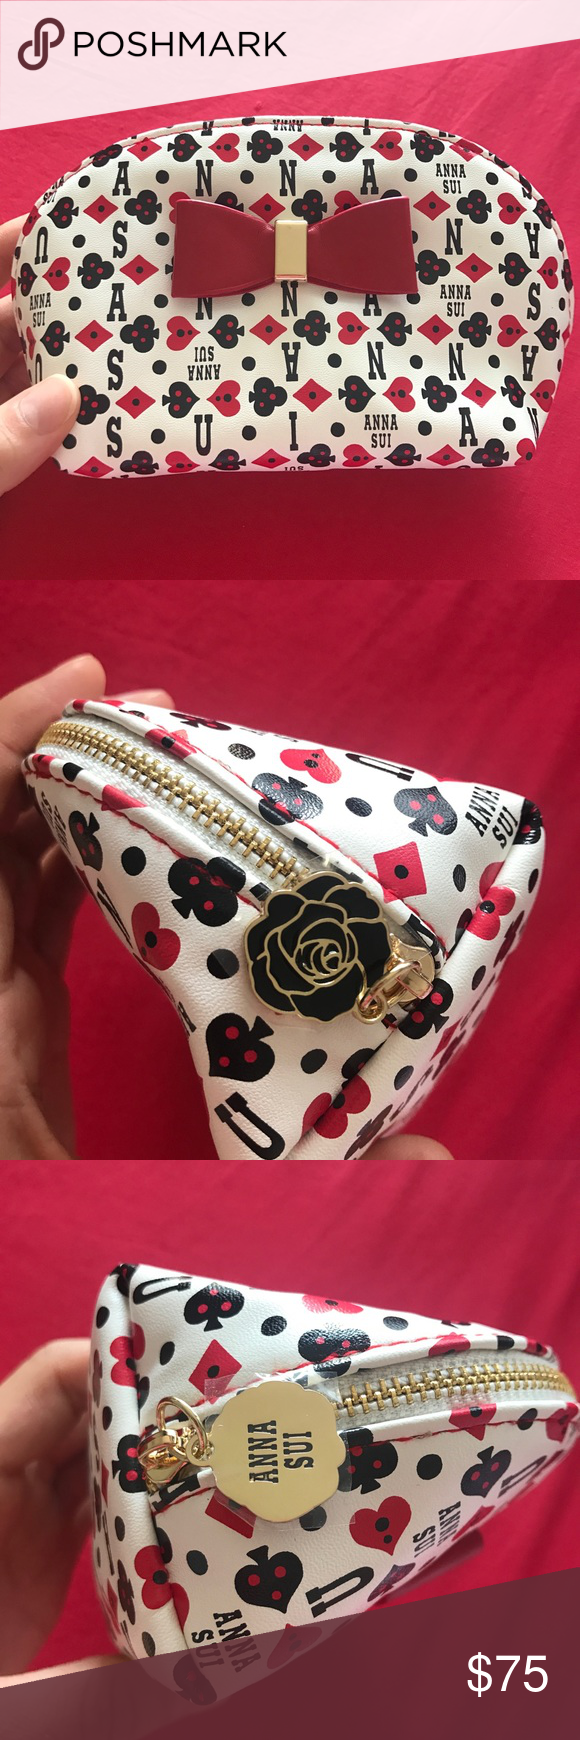 Anna Sui cosmetic bag ♠️♥️ NWT Anna sui bags, Cosmetic